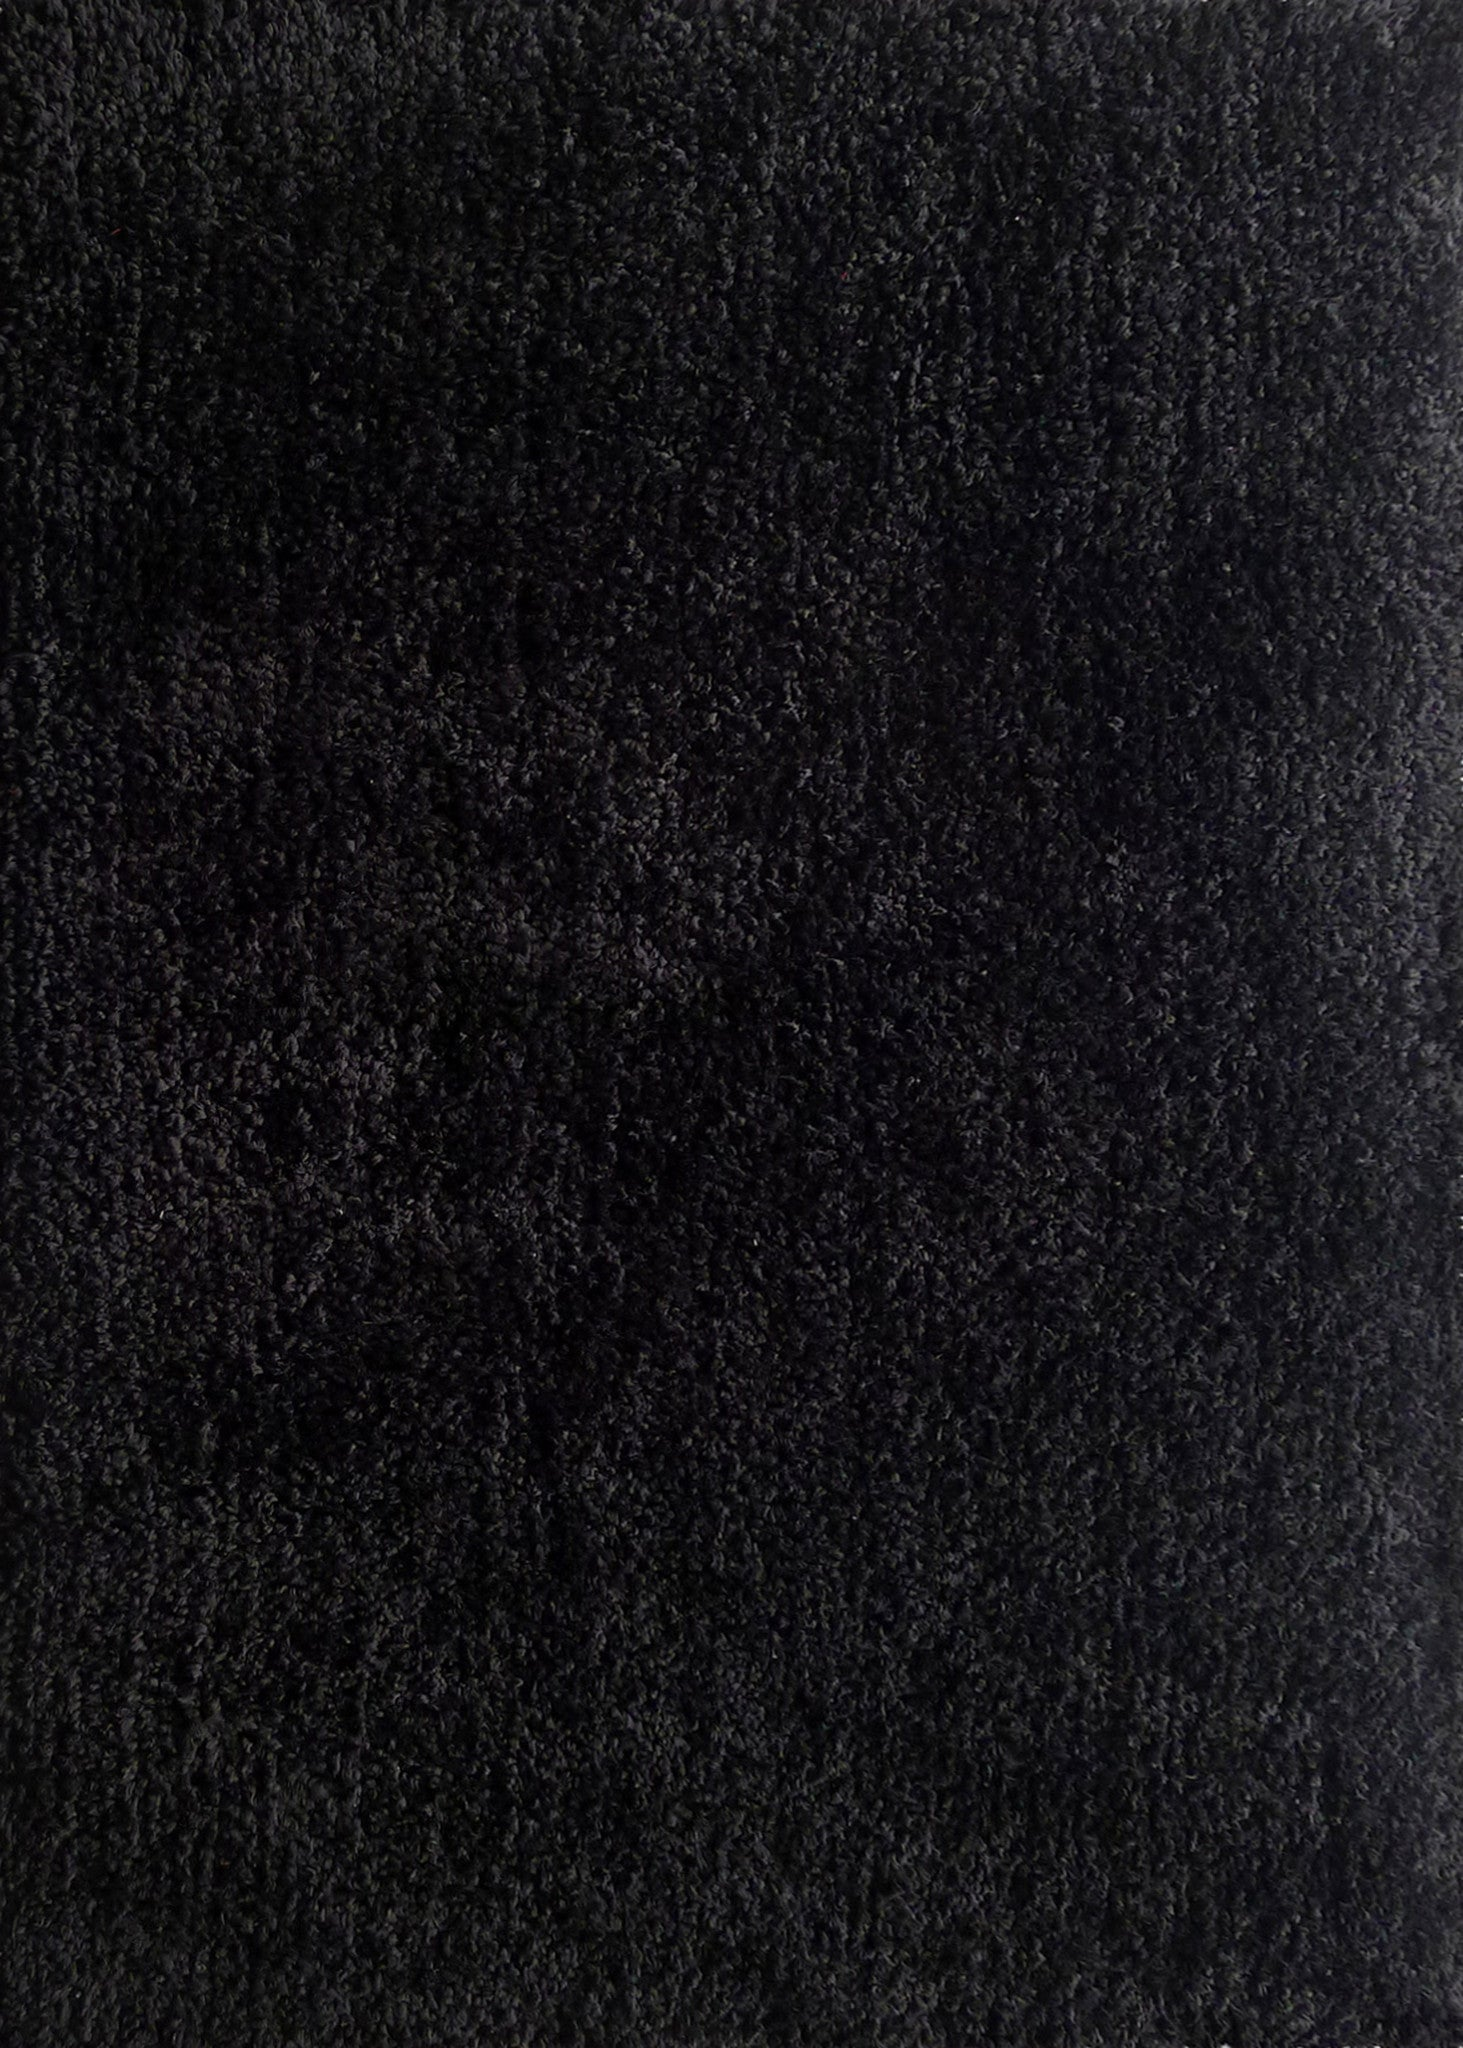 black rug texture. 2-Piece Set | Solid Black Thick Plush Shag Area Rug With Pad 2 Texture R